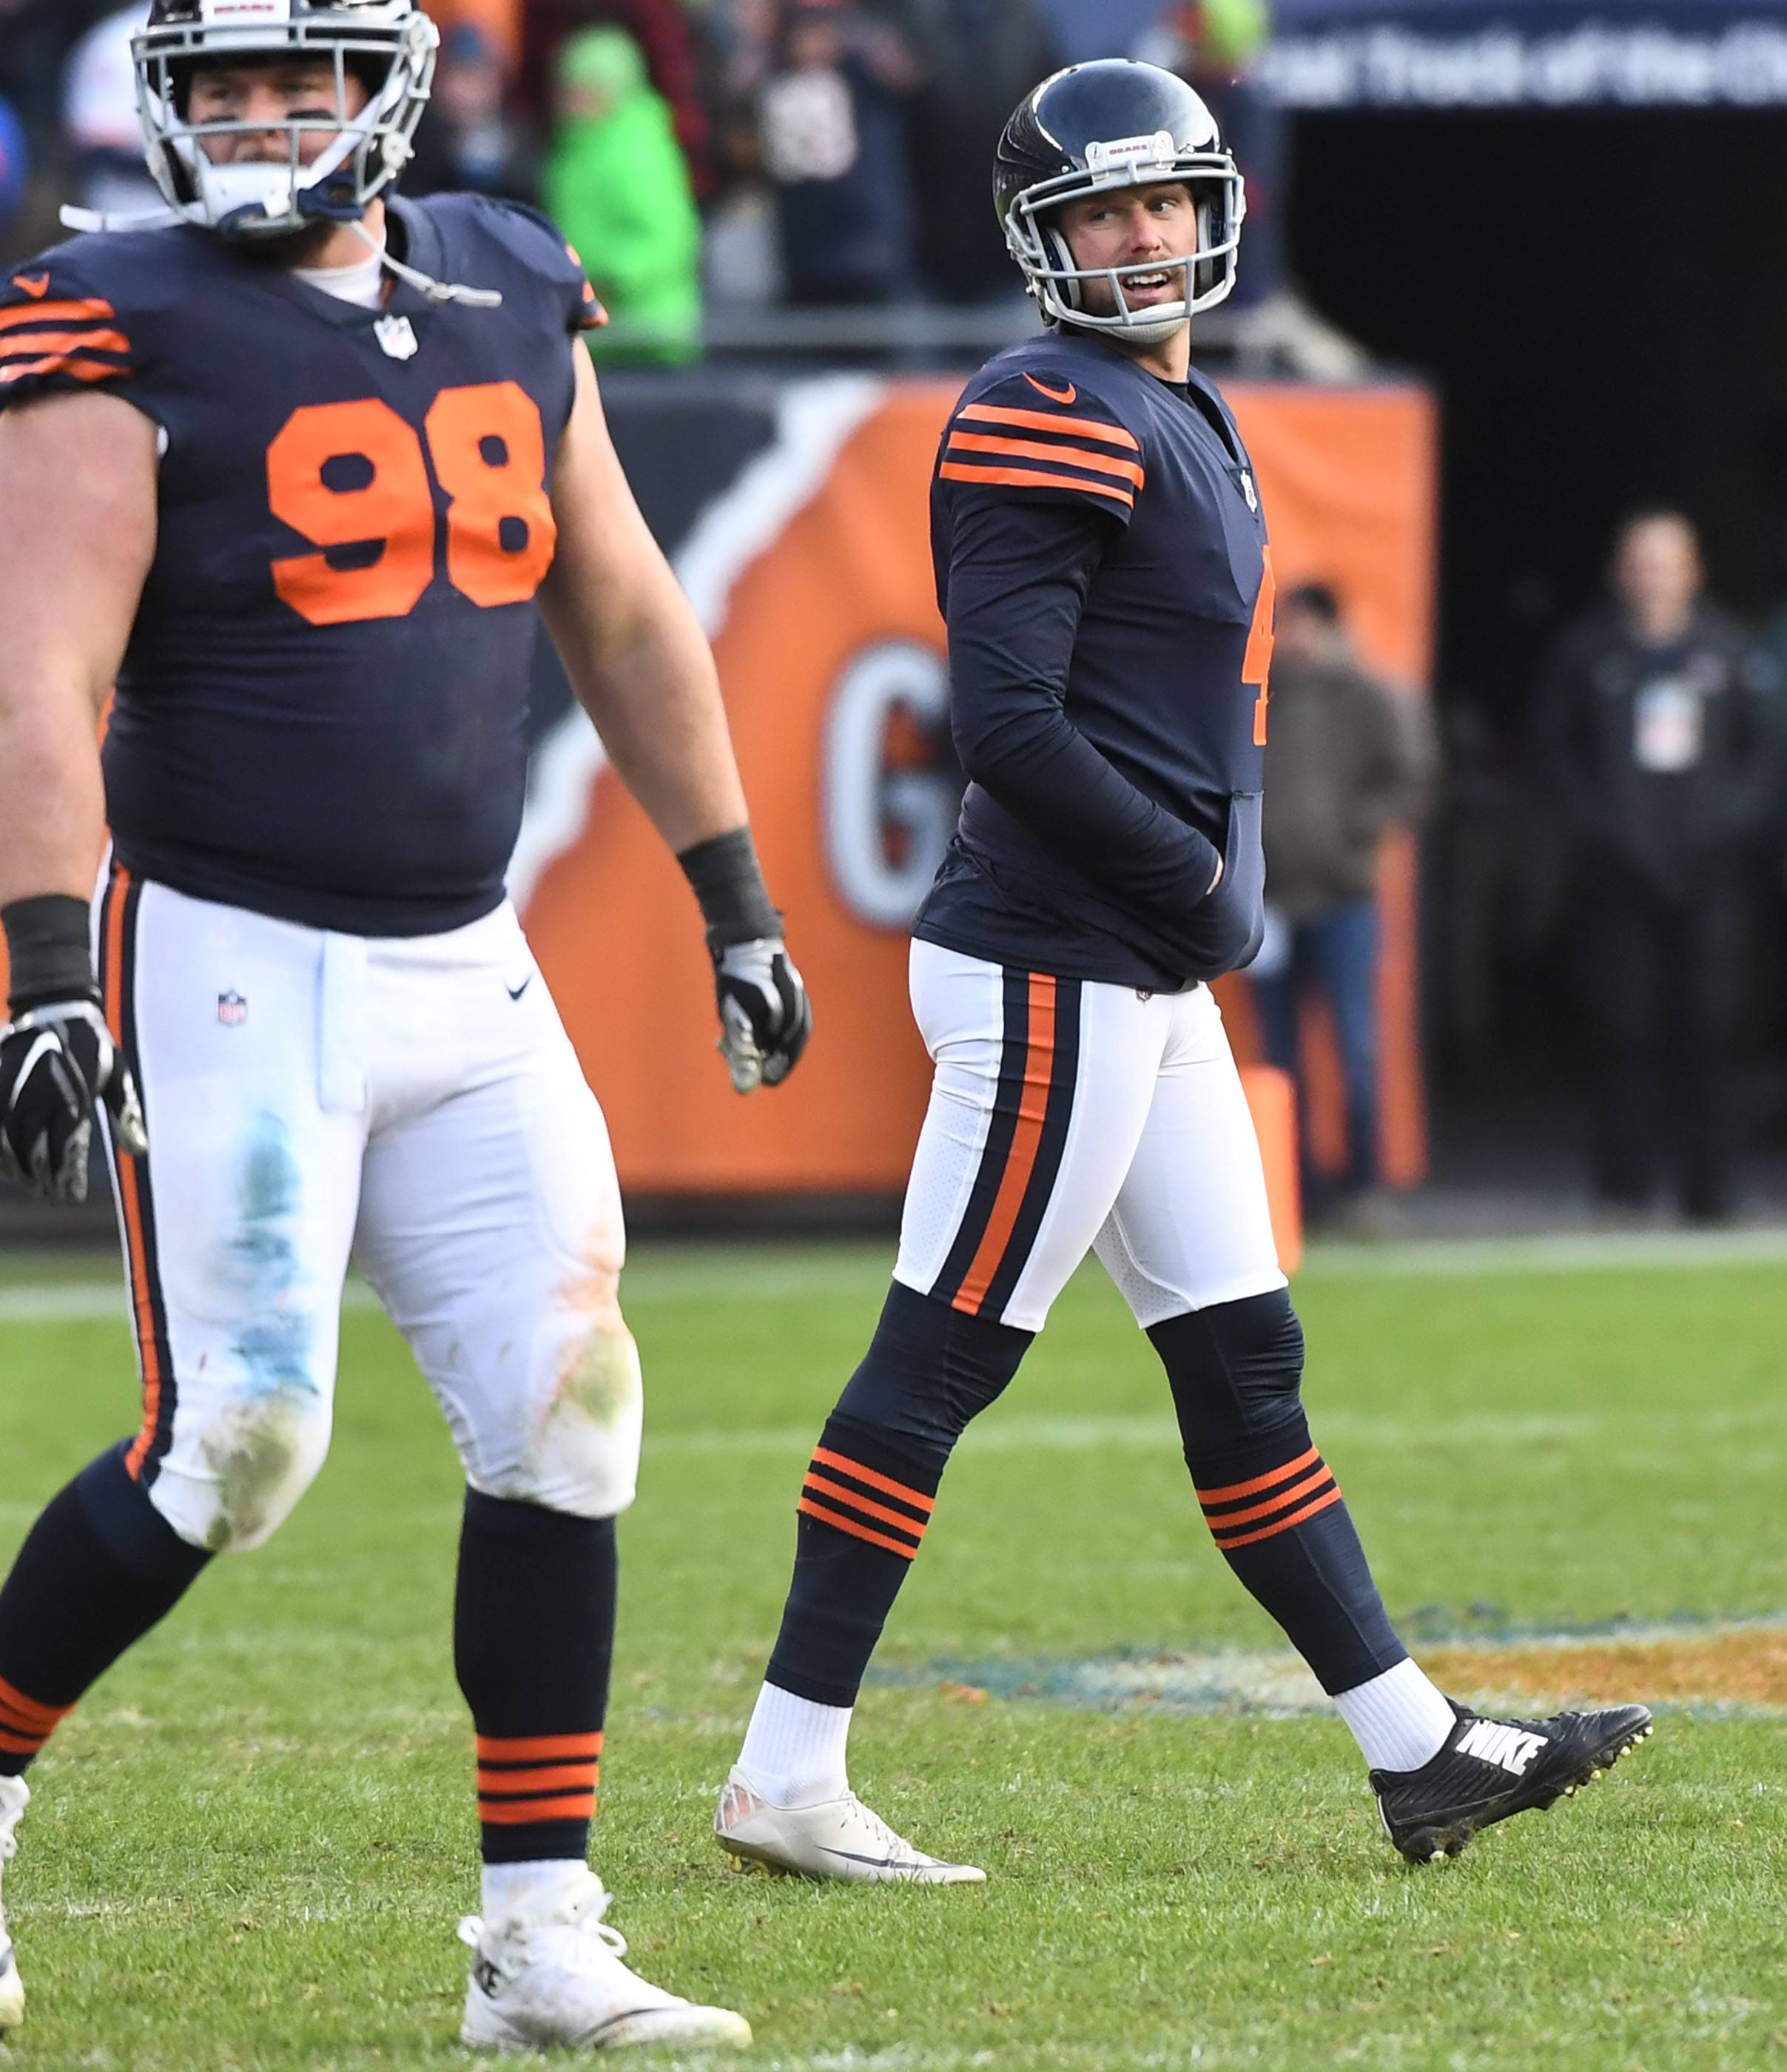 Chicago Bears kicker Connor Barth looks over his shoulder after missing a potential game-tying field goal against the Detroit Lions Sunday at Soldier Field in Chicago.